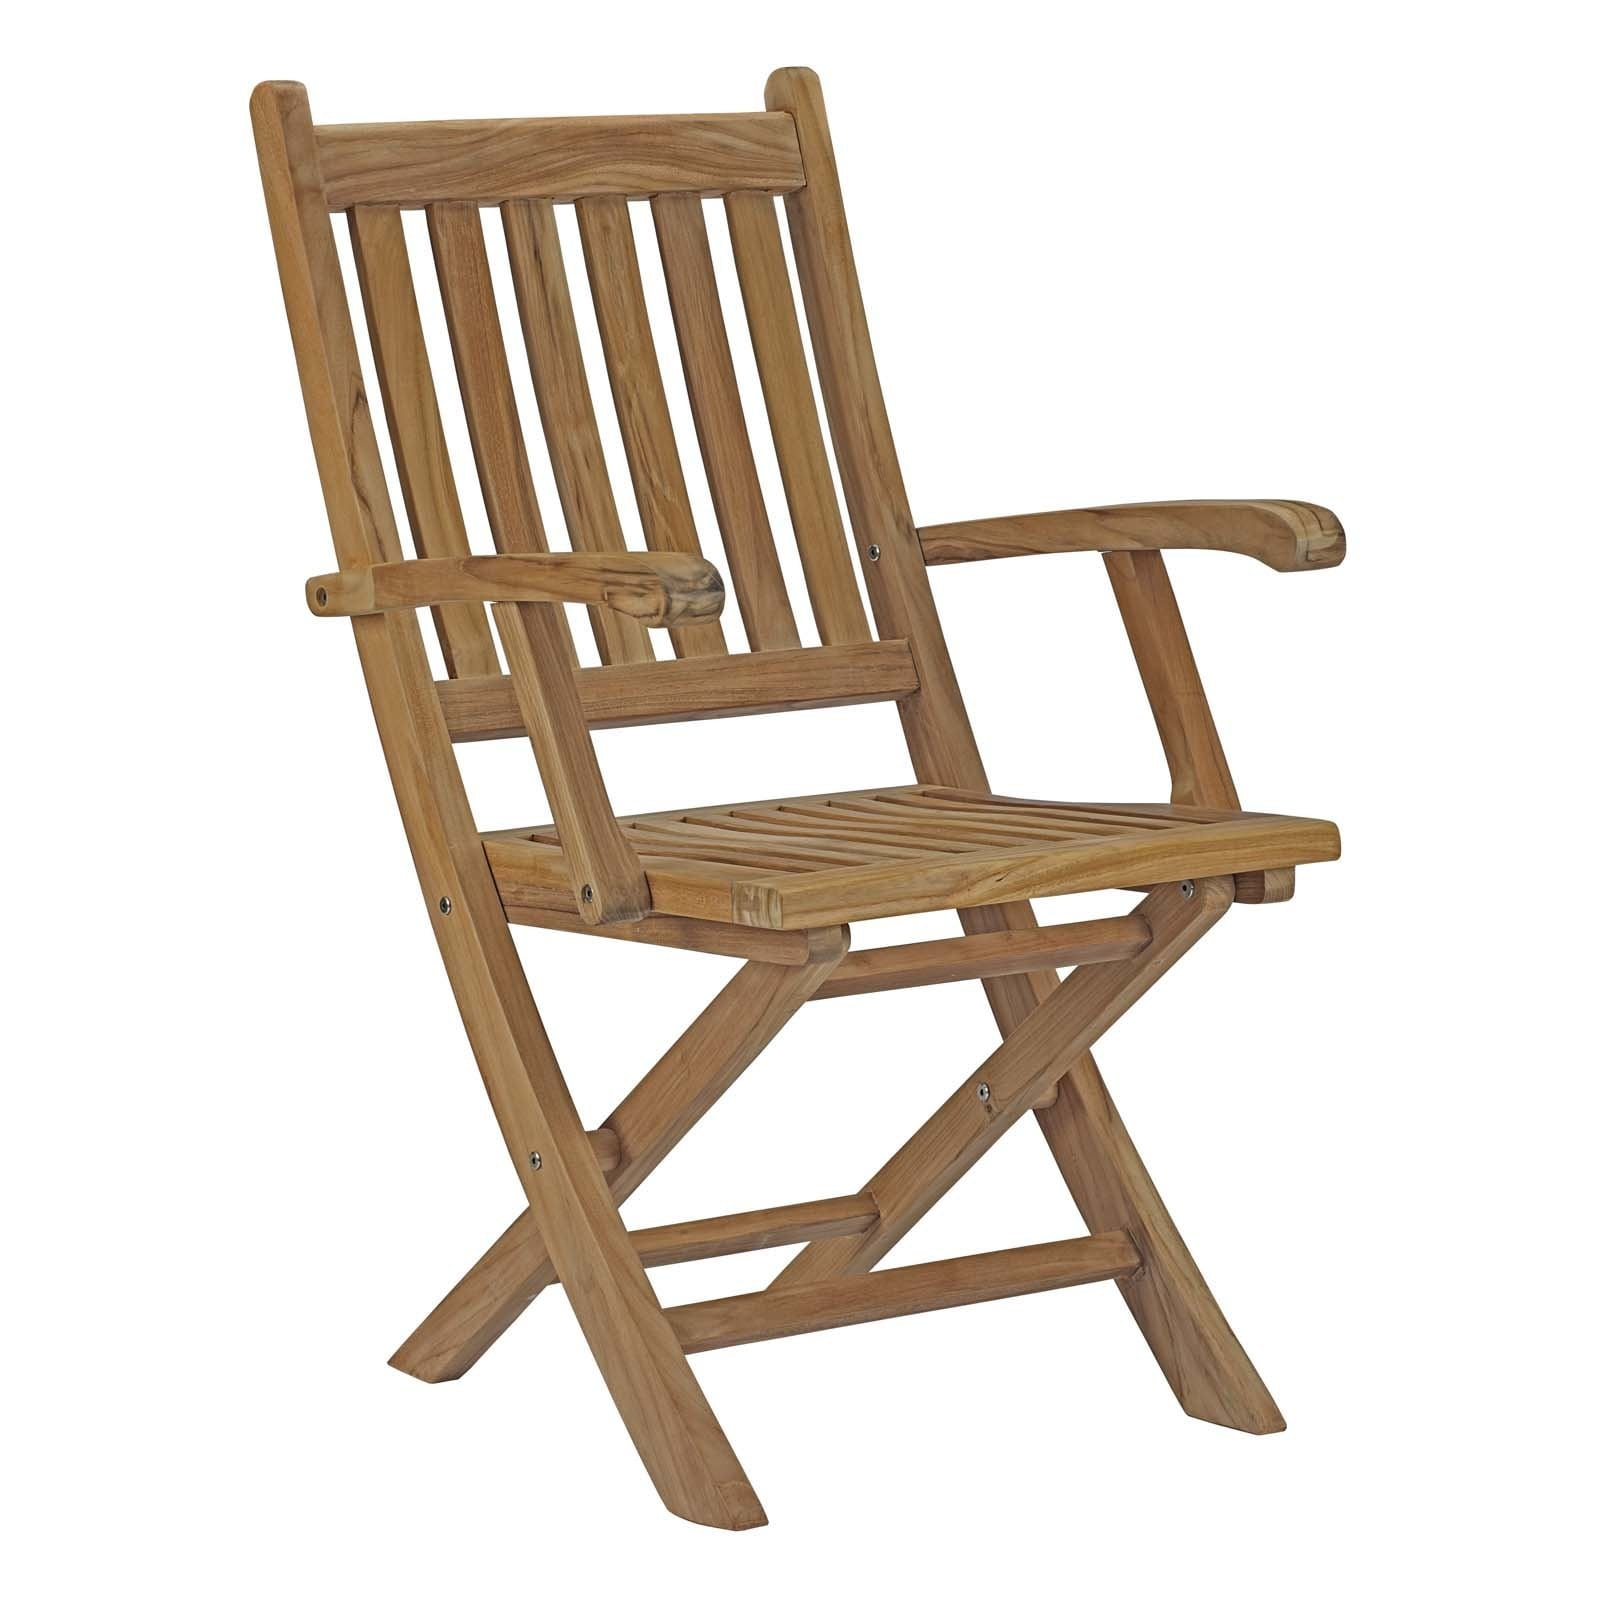 Shop marina outdoor patio teak folding chair free shipping today overstock com 16935790